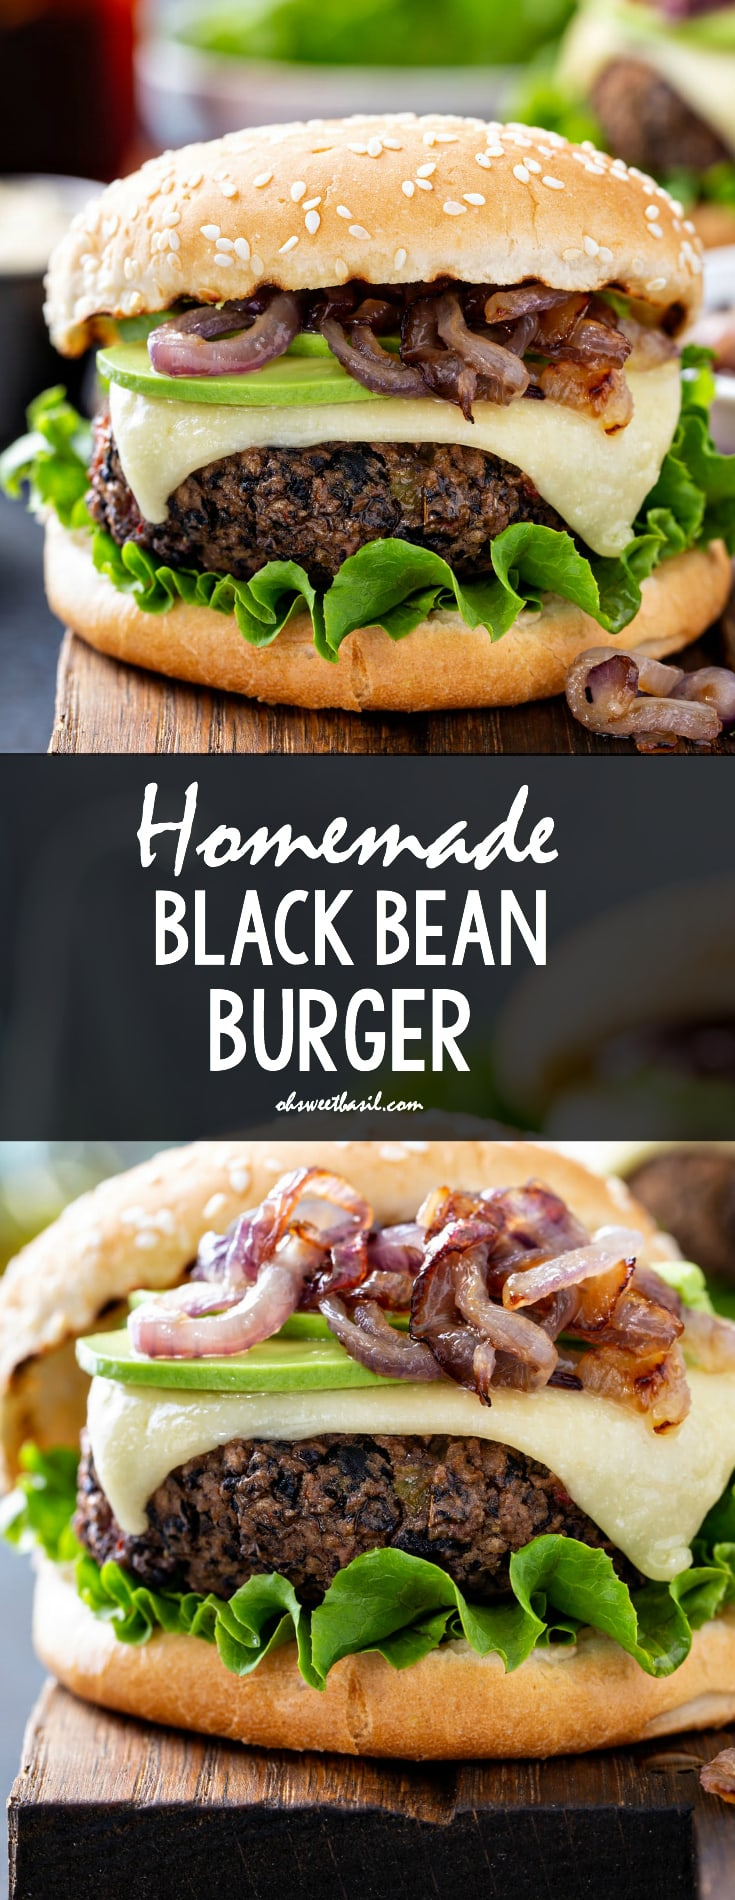 A black bean burger on a sesame seed bun. It is dressed with onions, cheese and lettuce.